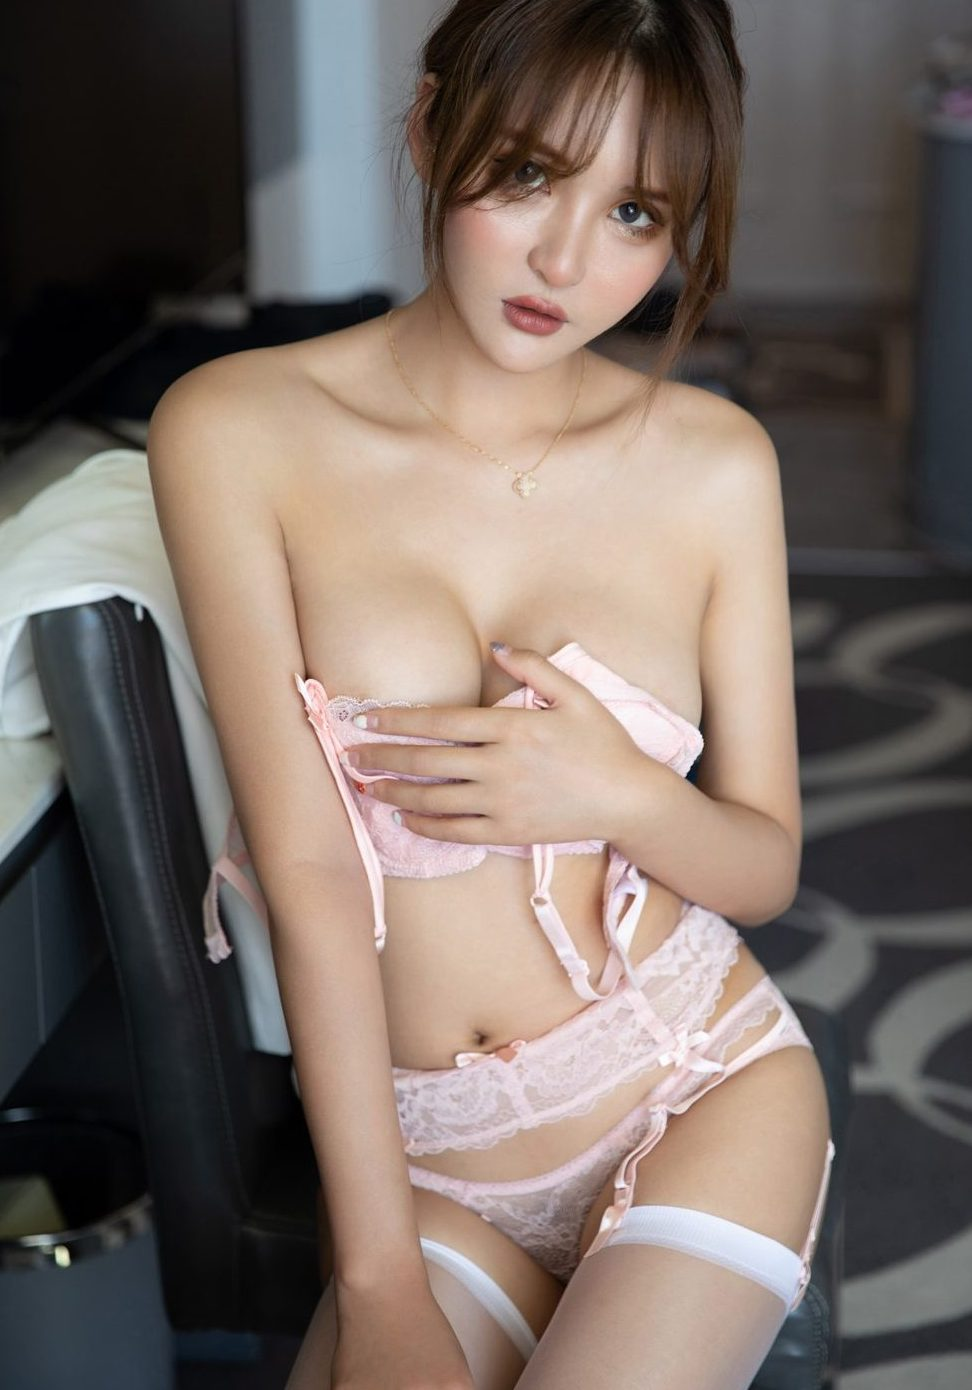 emily - sexy girl with big boobs wears a super nice lingerie